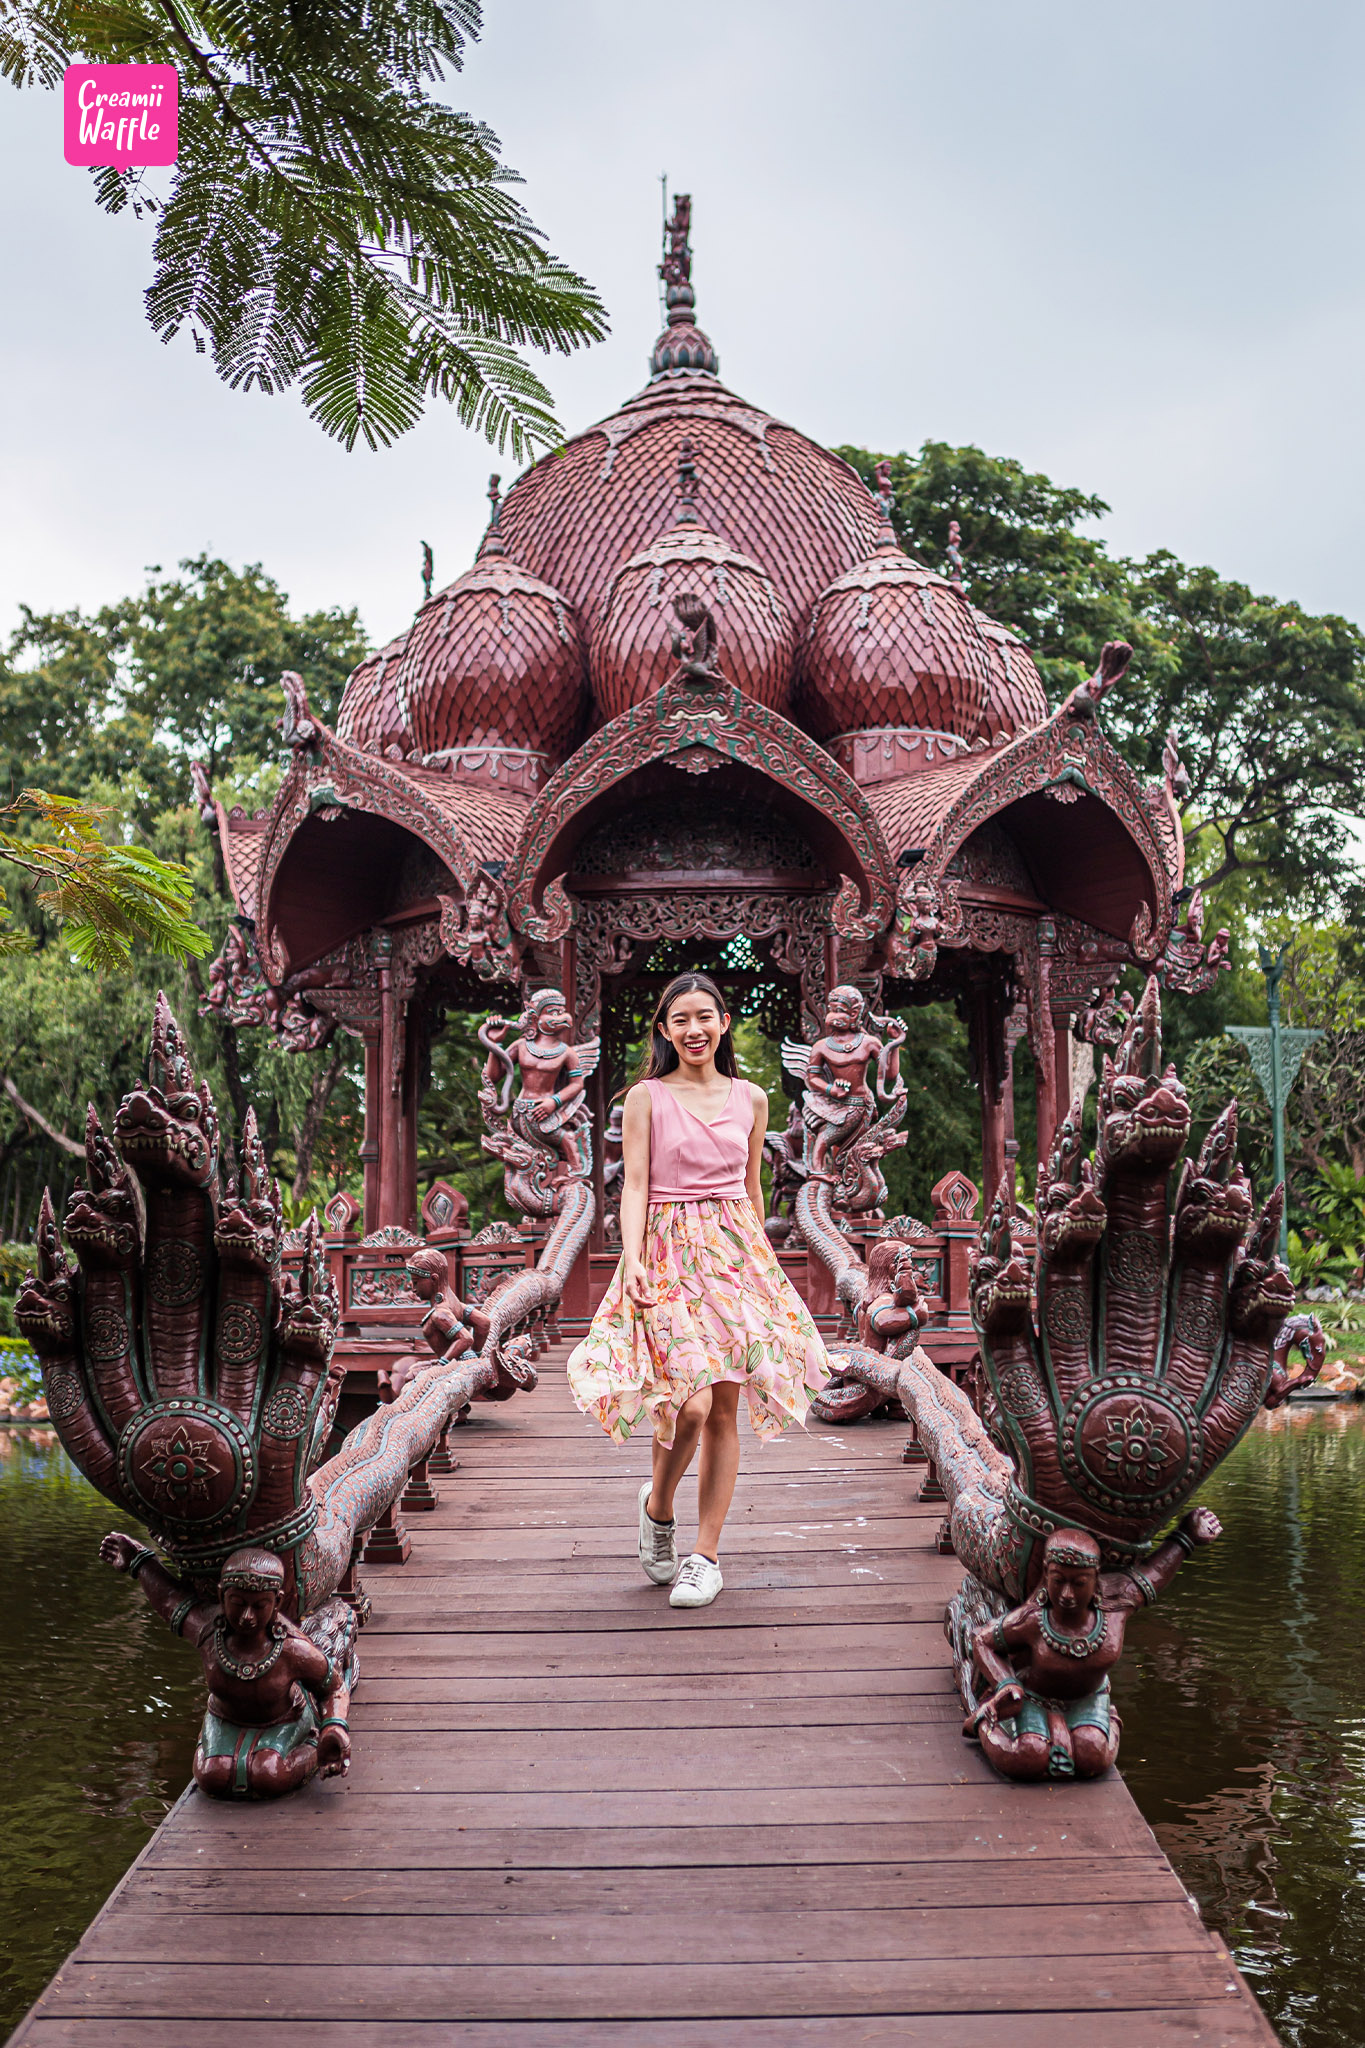 The Ancient City museum Thai เทวโลก